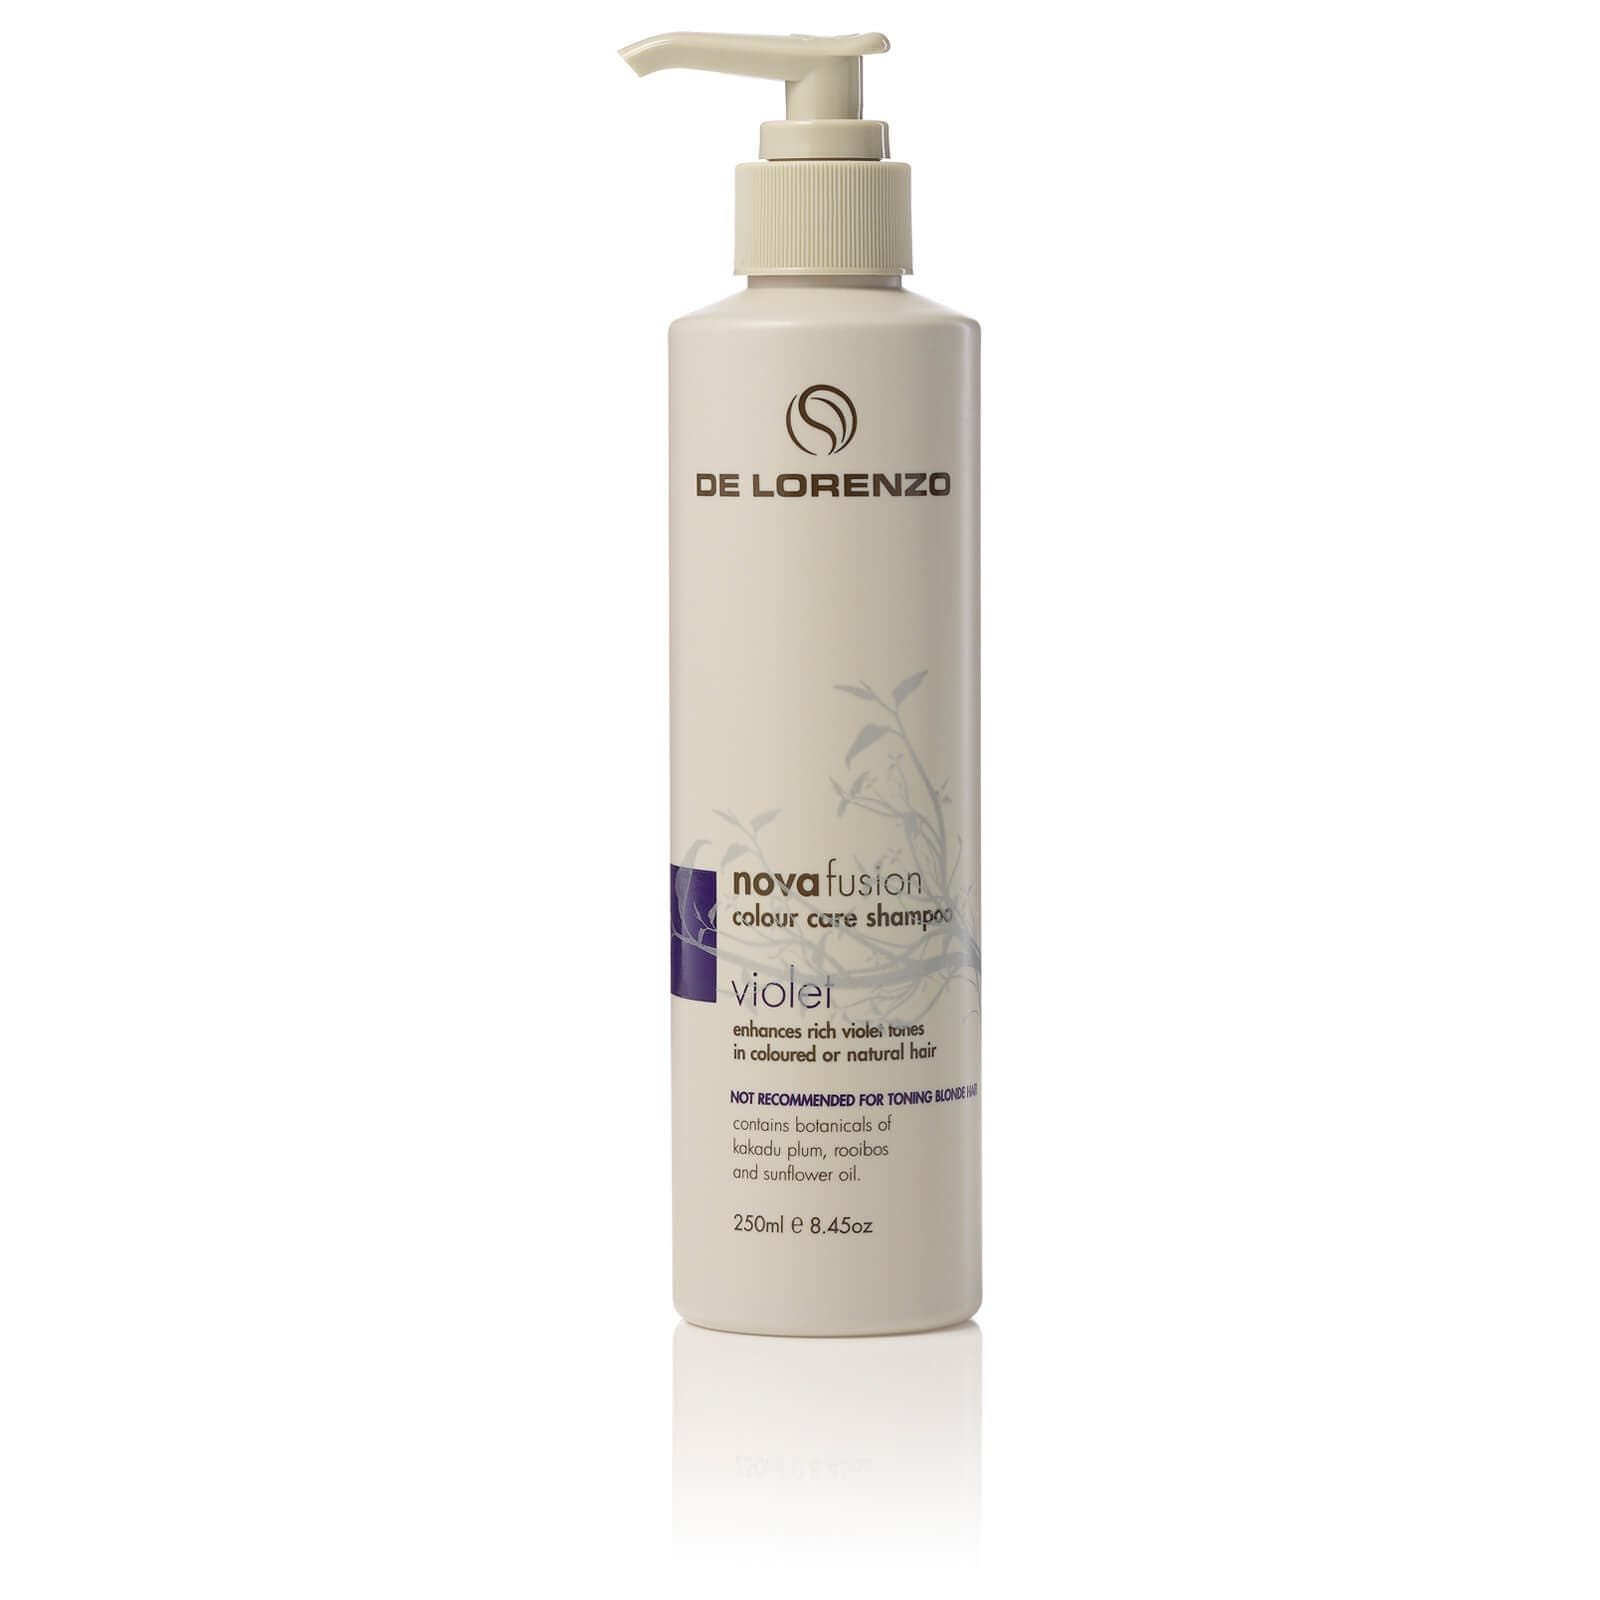 De Lorenzo Novafusion Colour care Shampoo Violet 250mL